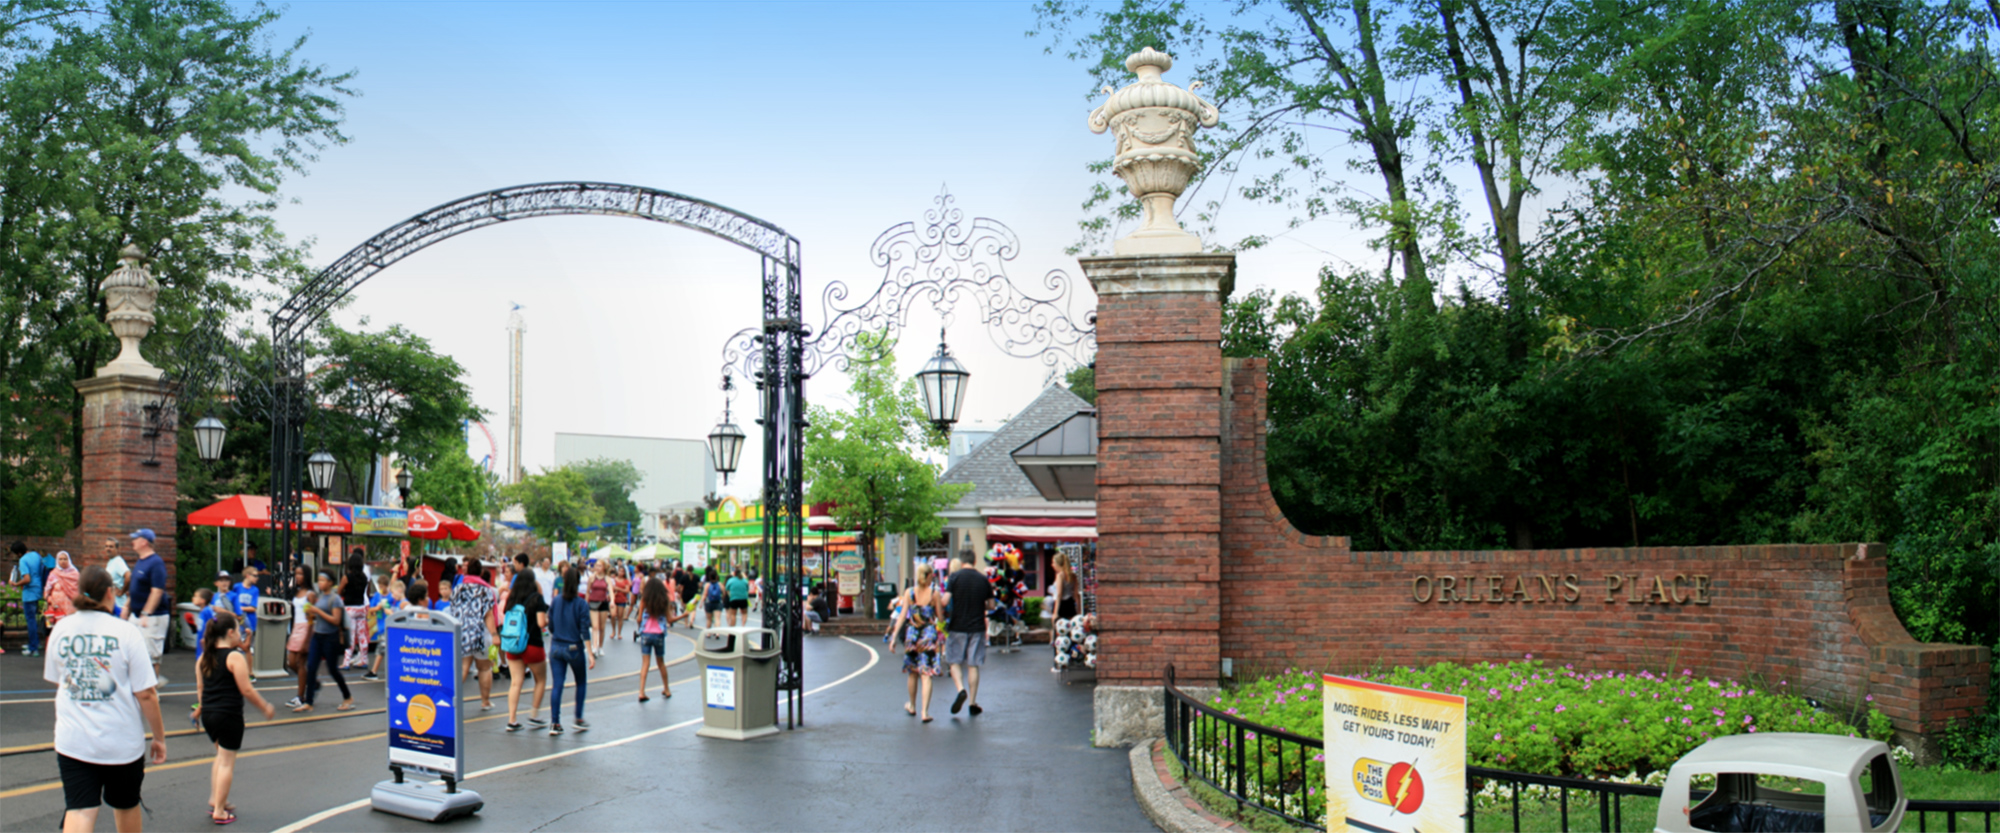 six-flags-great-america-panorama-07.jpg